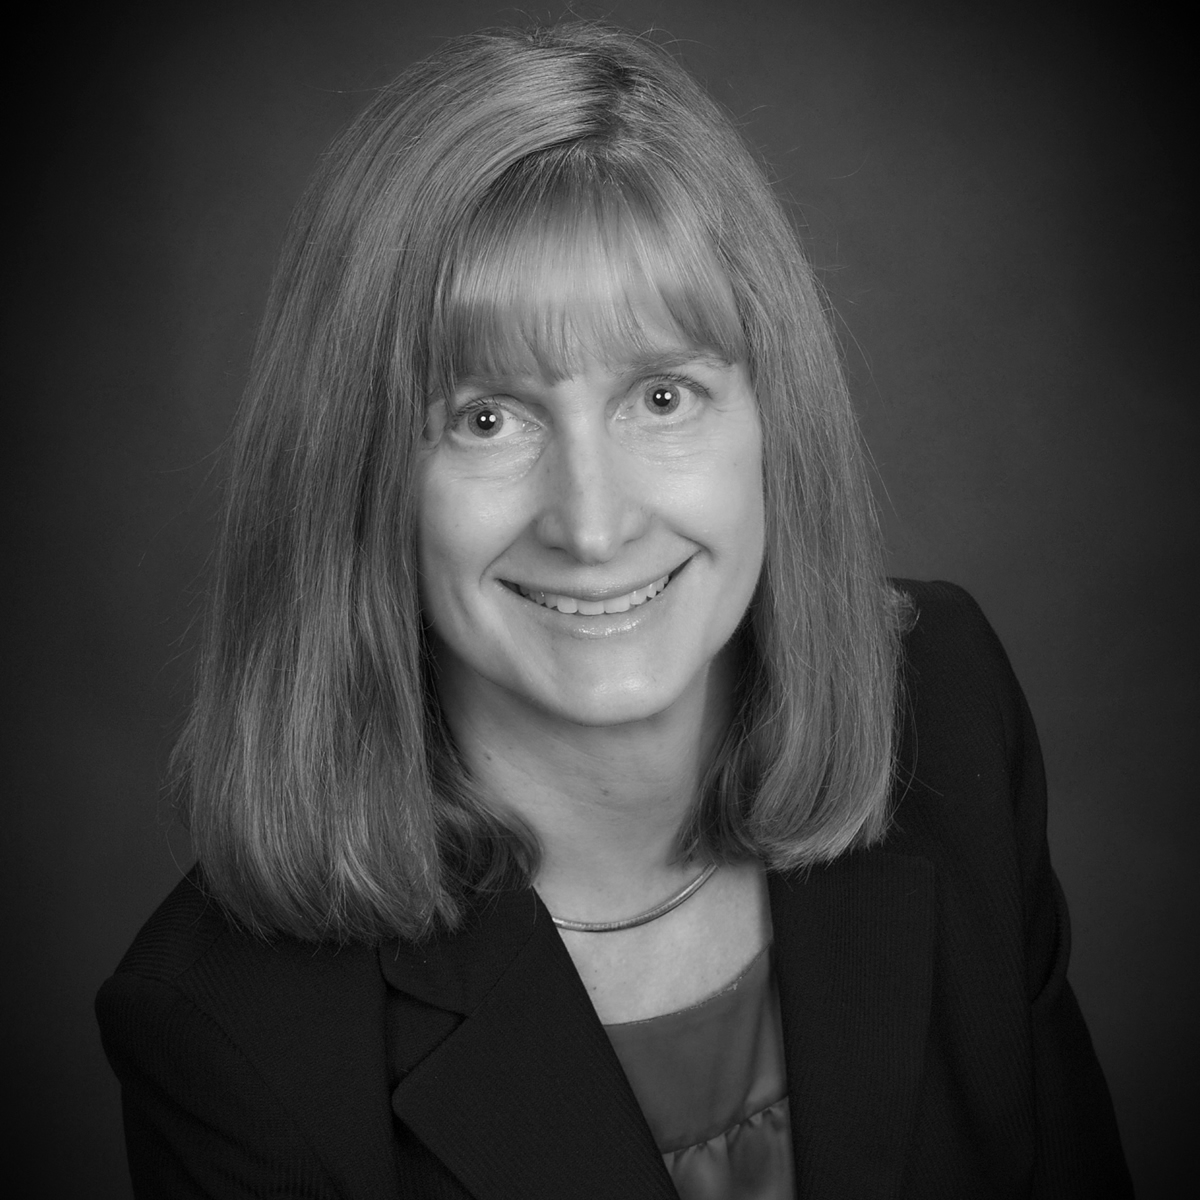 Lisa Barnes P.E., CIH, Practice Line Leader, Sustainability & Climate Change Services; Bureau Veritas North America Inc.